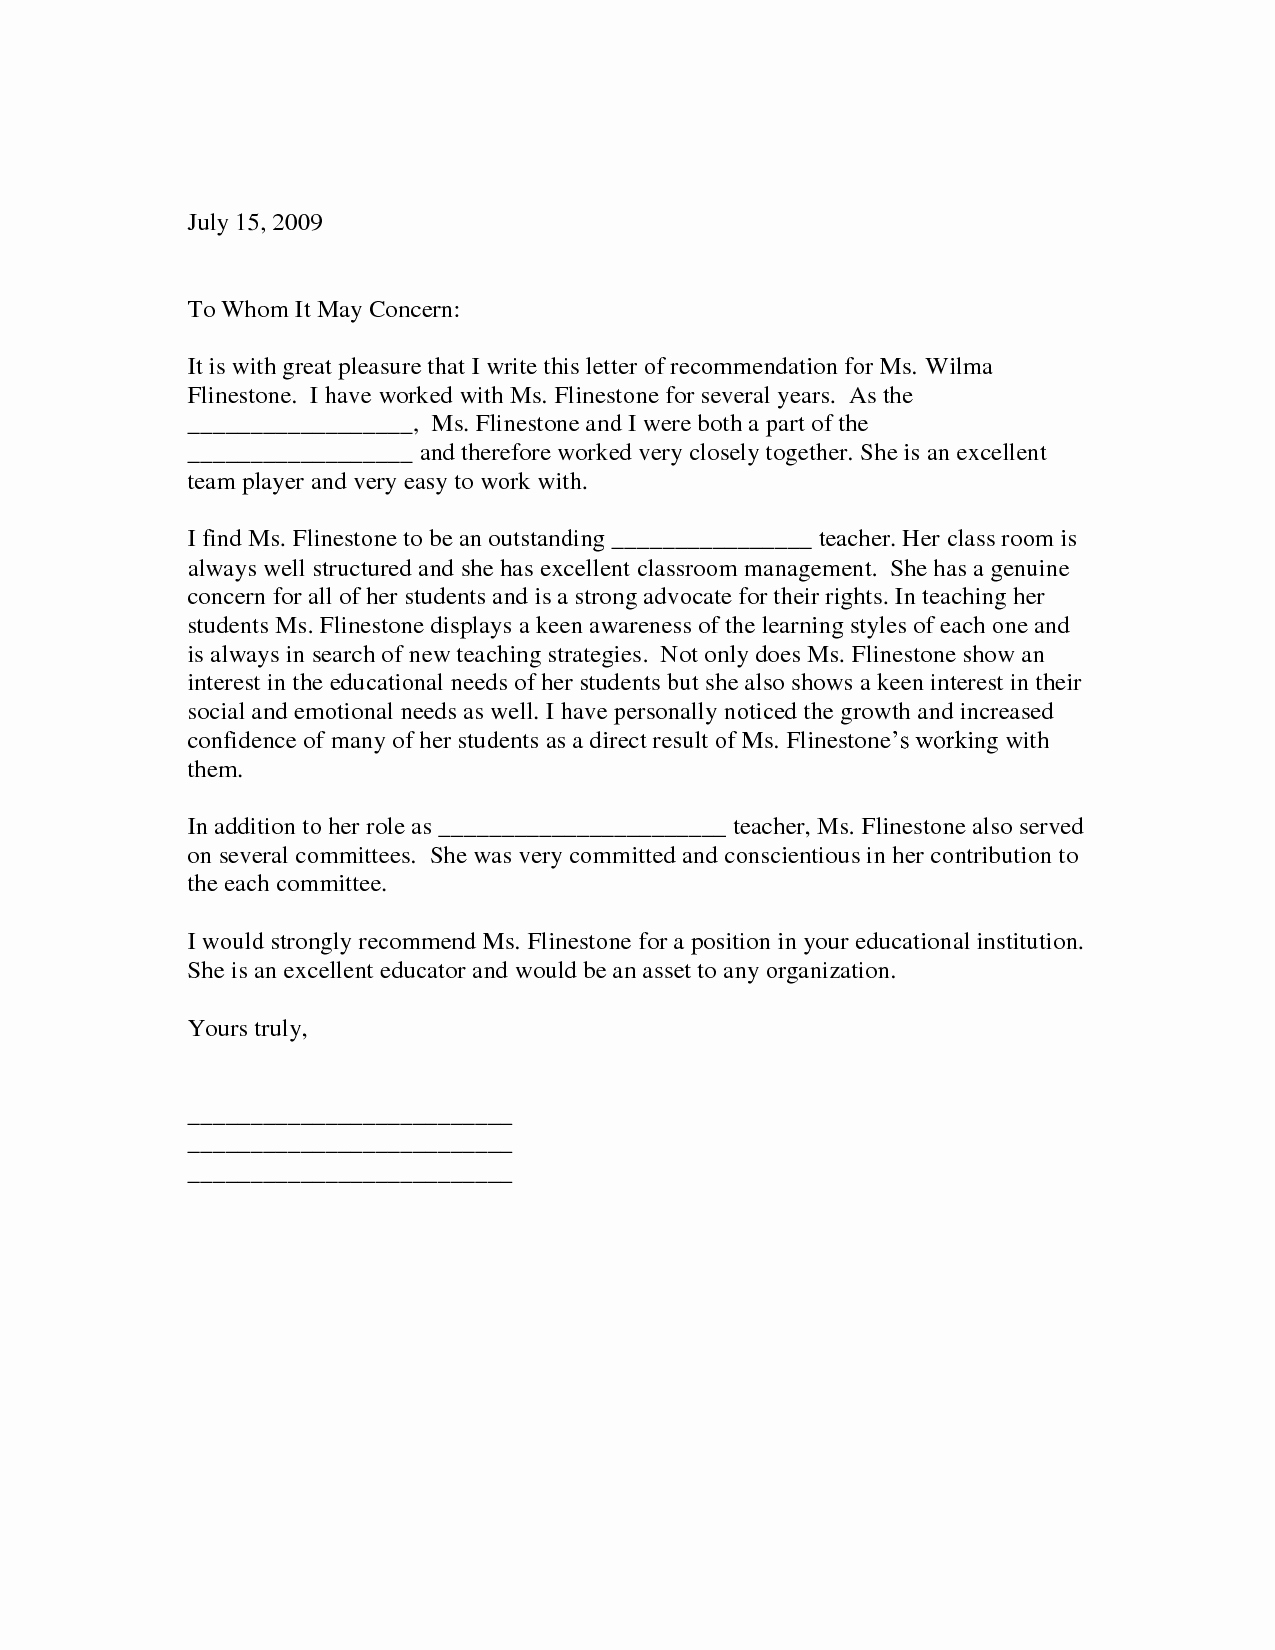 Letters Of Recommendation for Teachers Lovely Sample Letter Of Re Mendation for Teacher